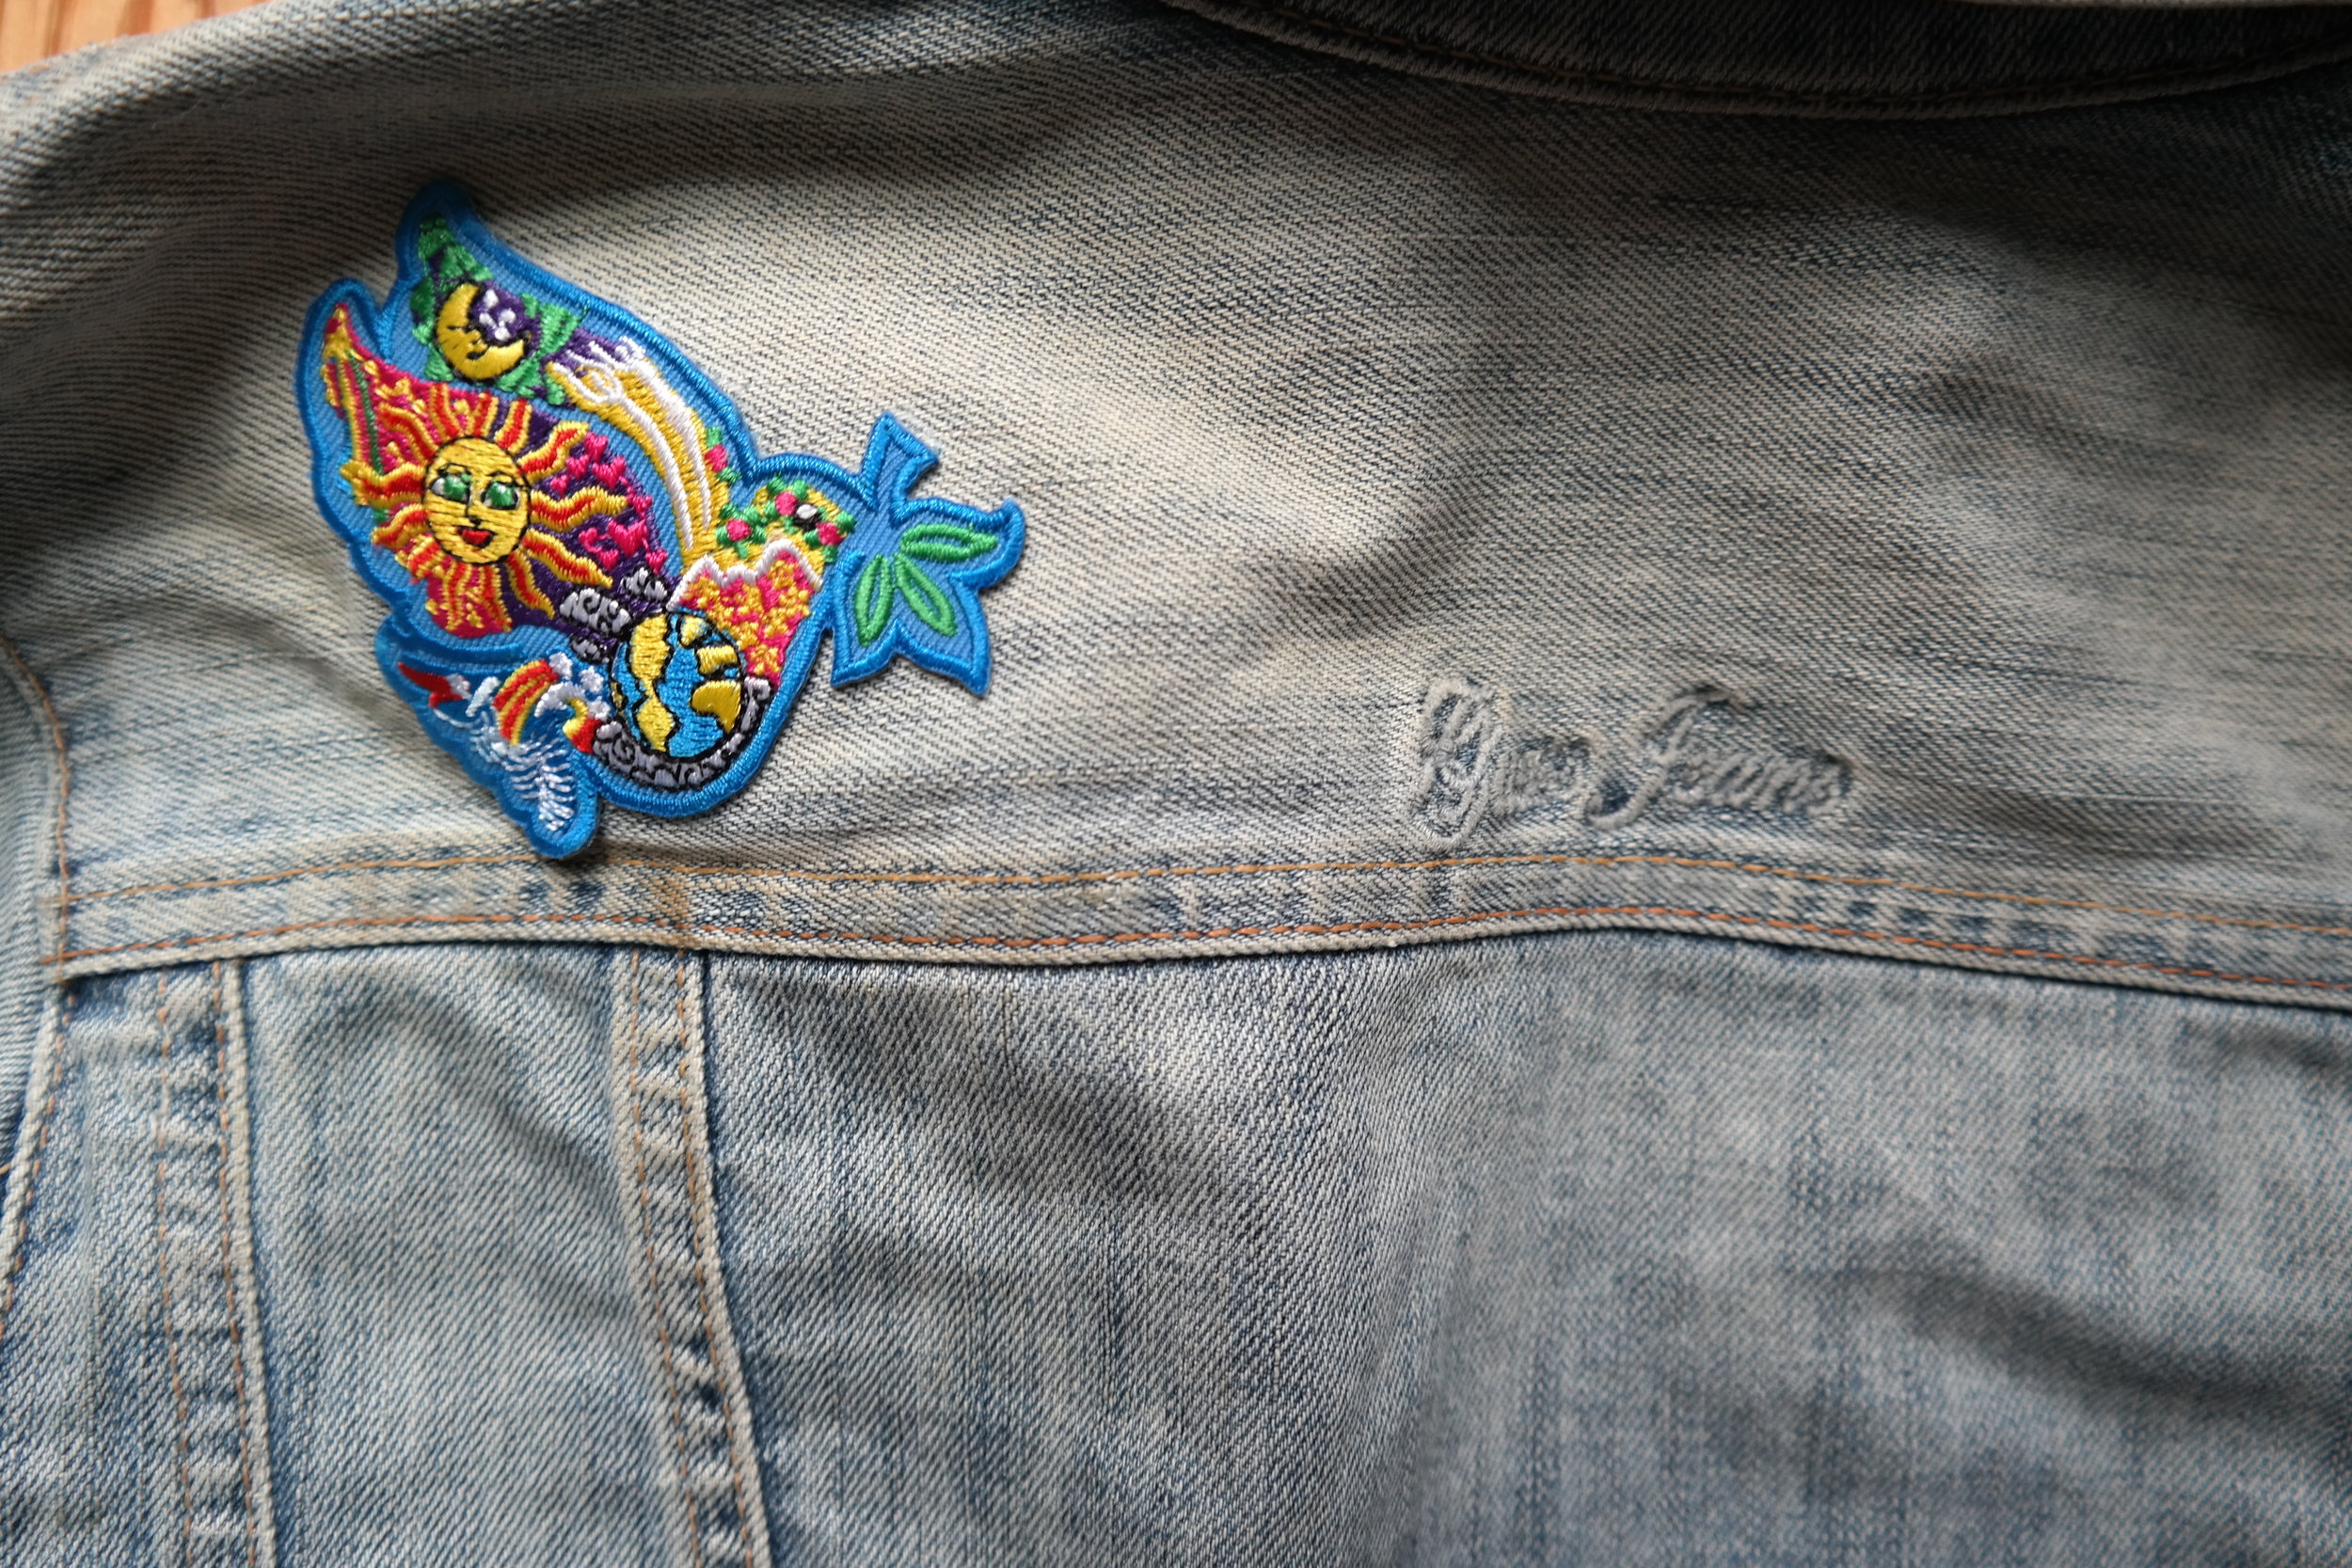 Guess Jeans and custom patches